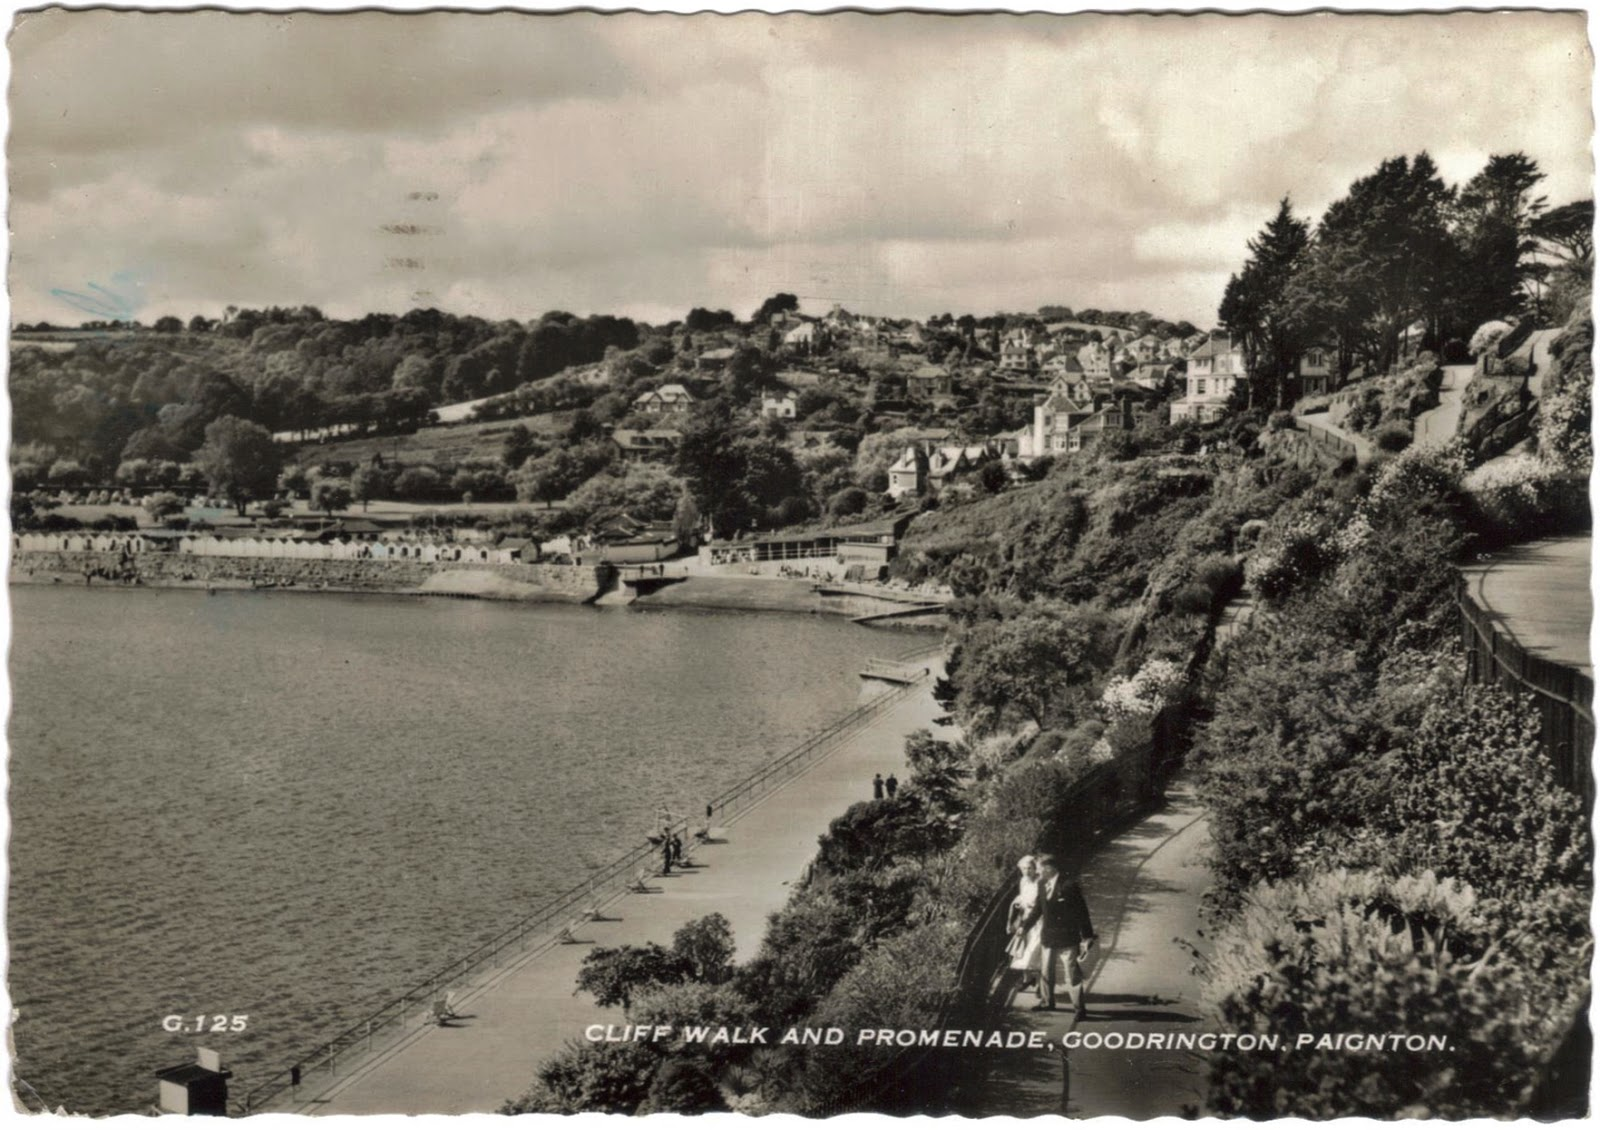 Postcard Goodrington, Devon